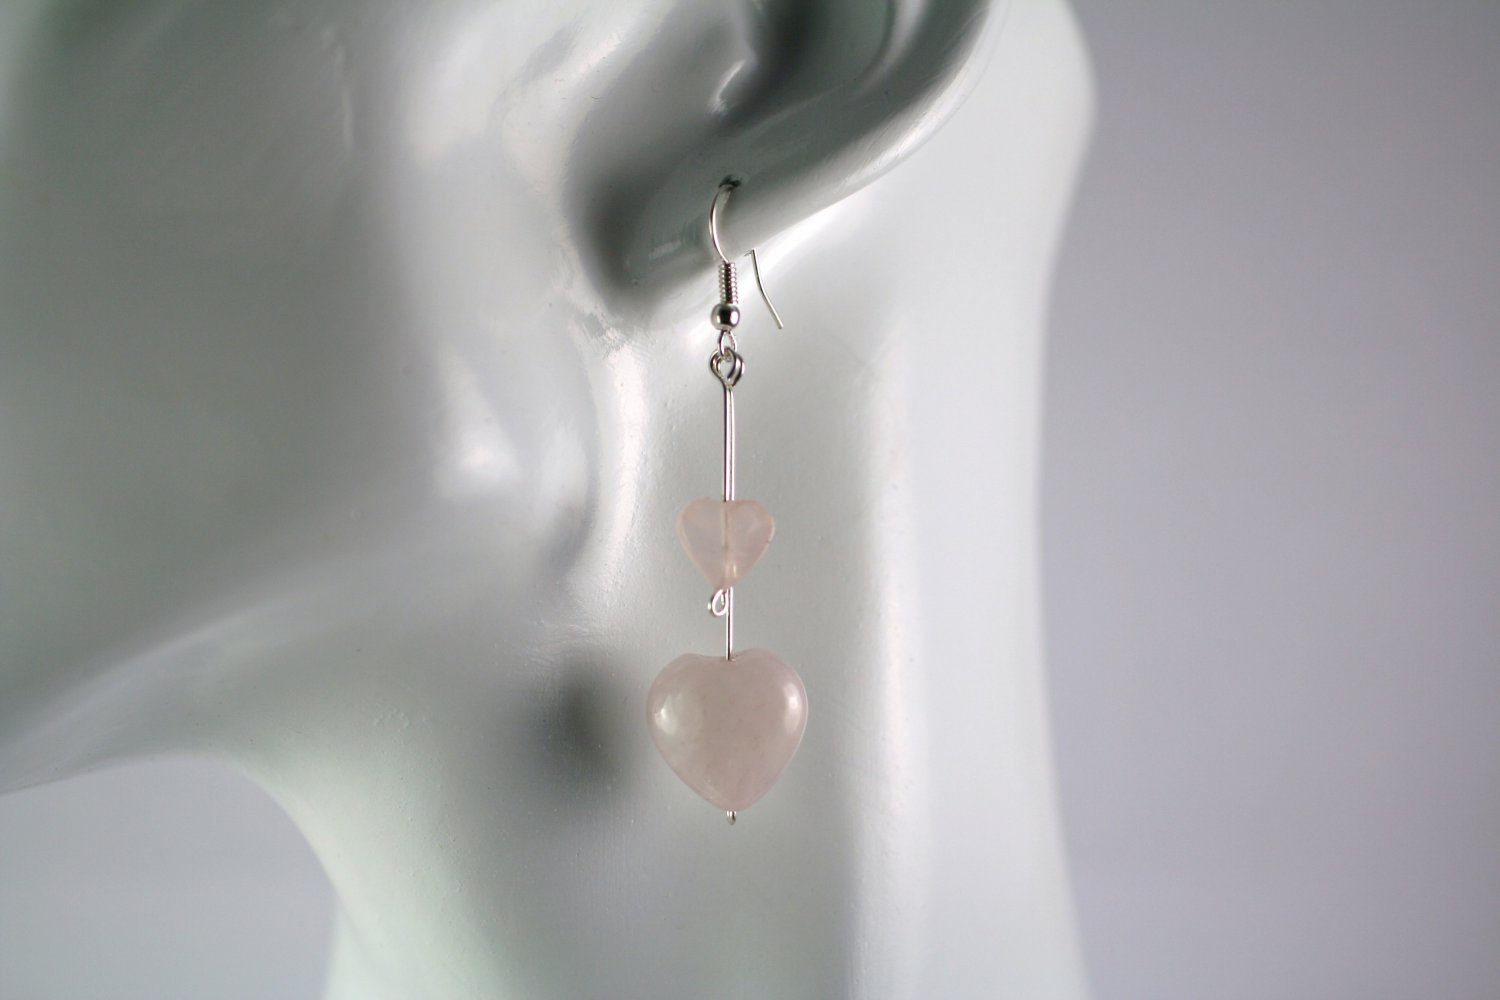 Silver Straight Drop Dangle Earrings with Rose Quartz Hearts Beads Handcrafted Jewelry